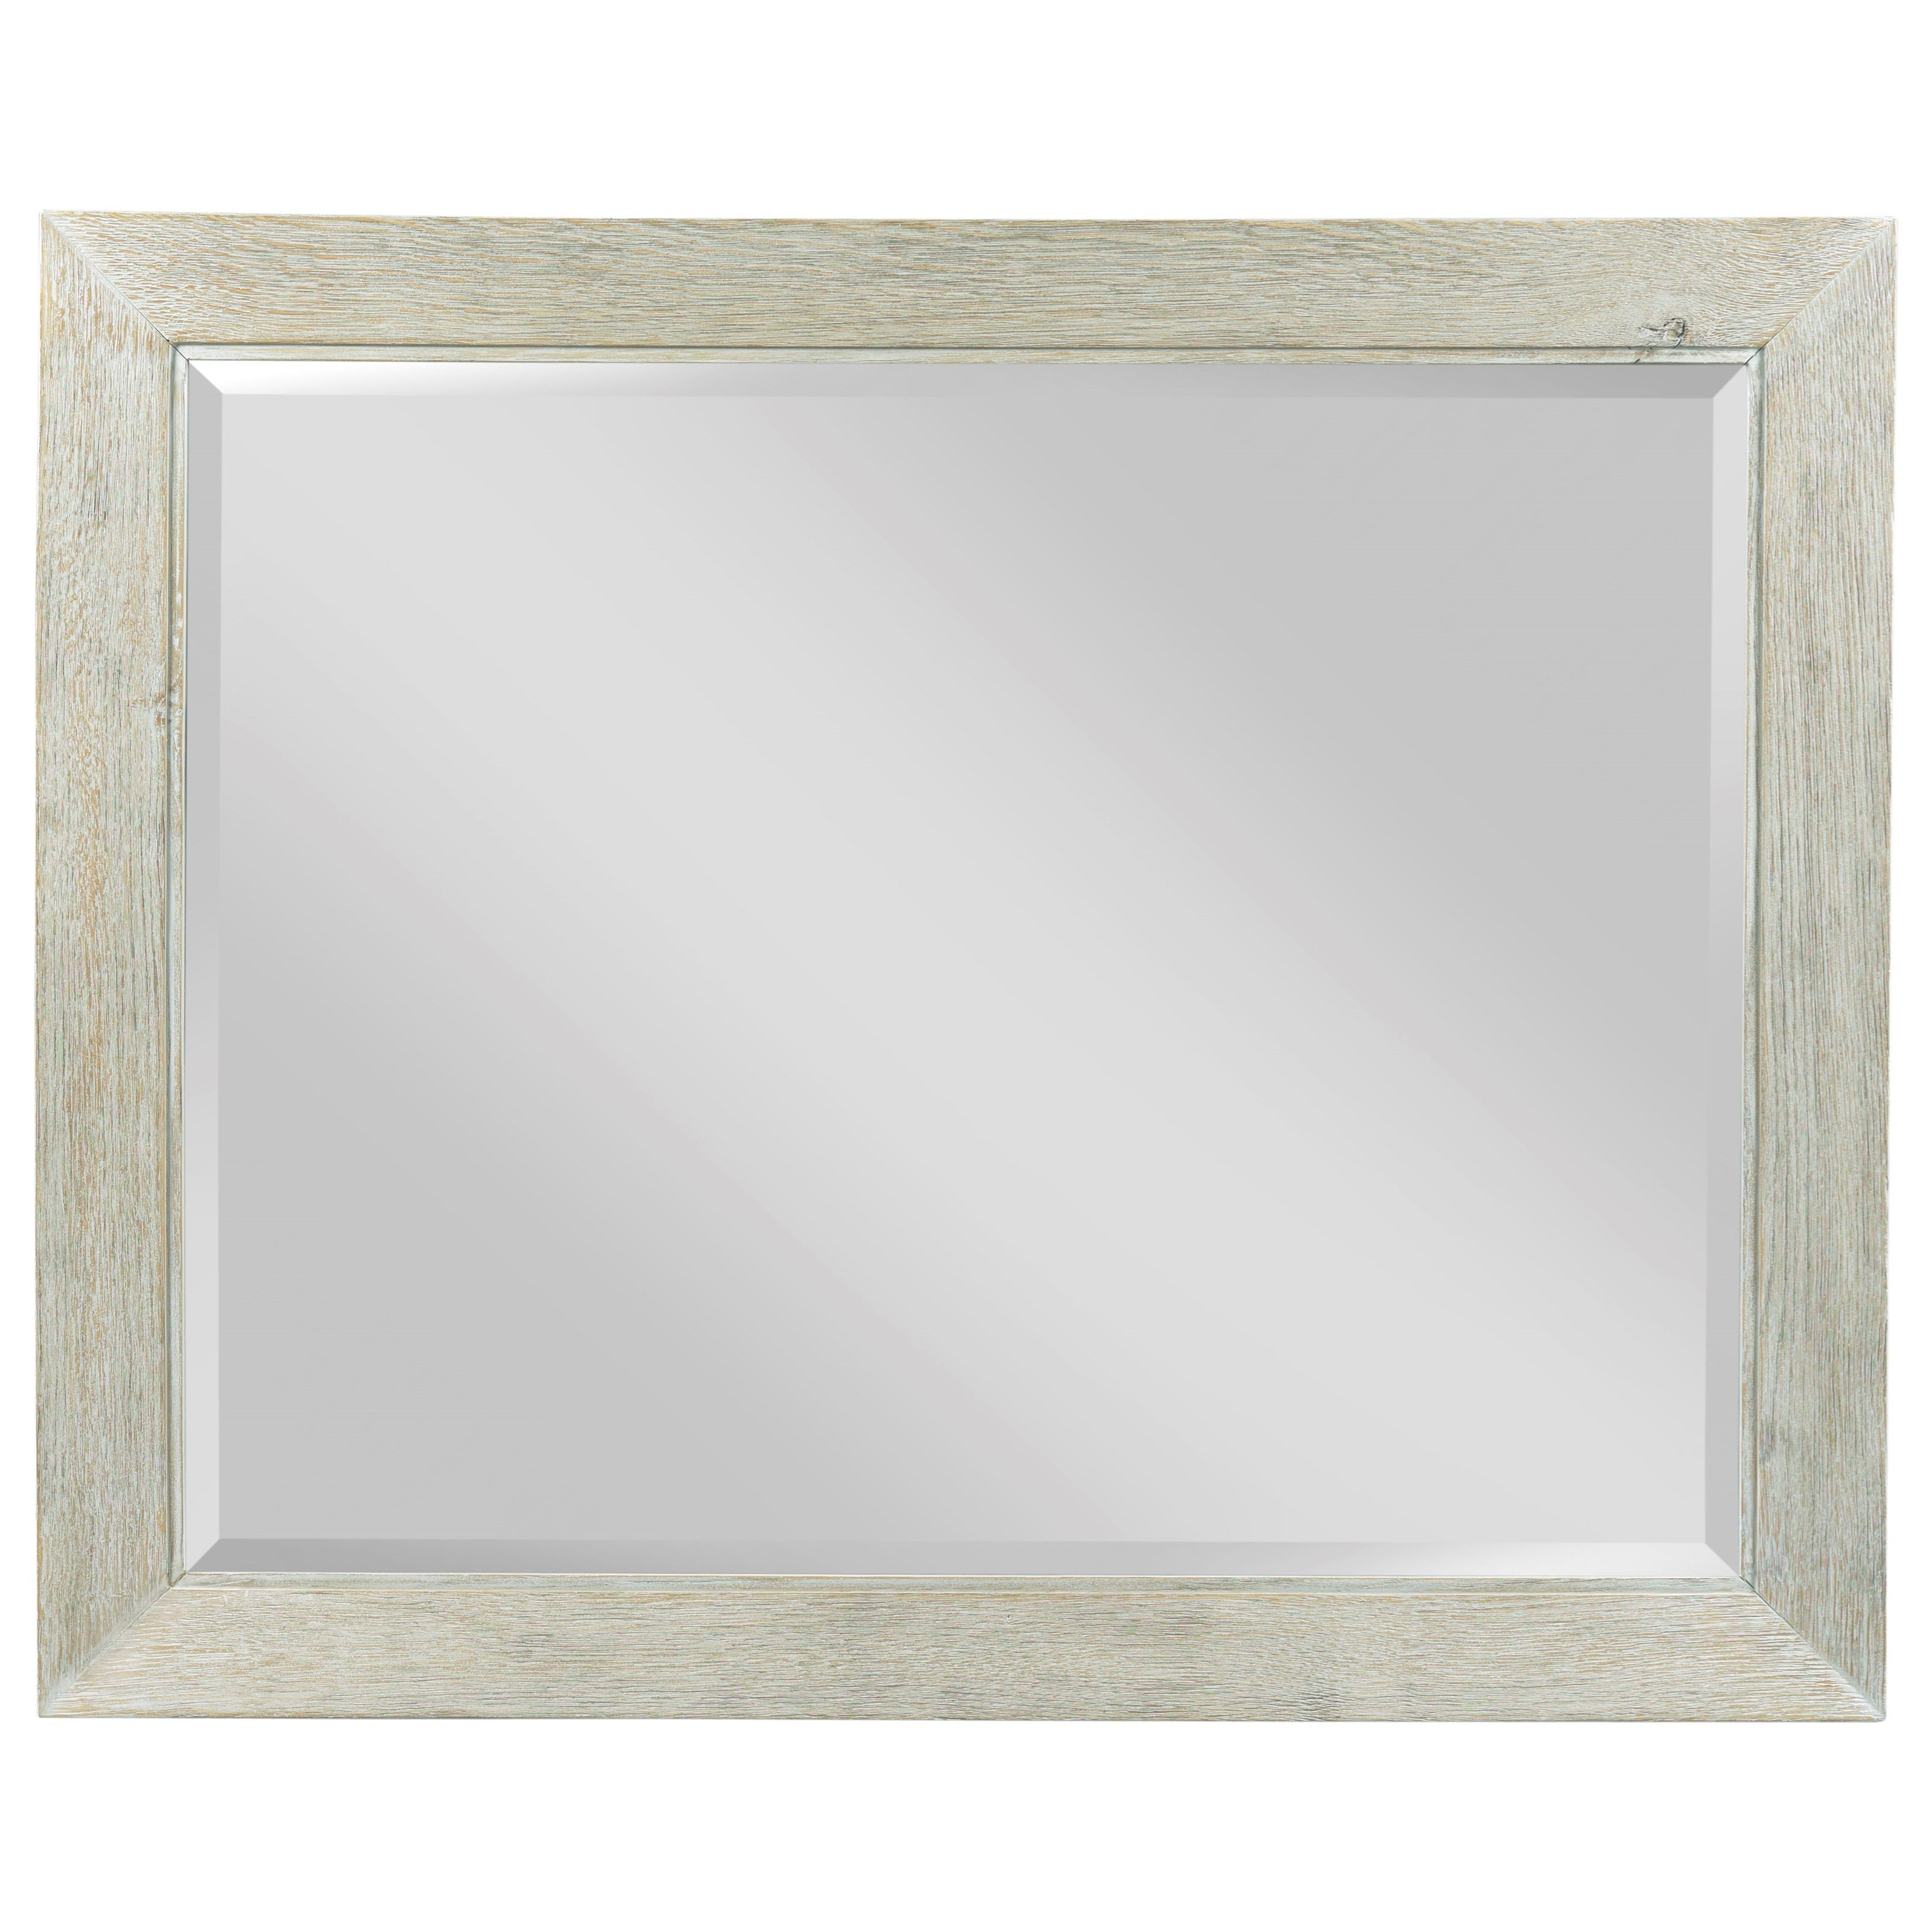 Trails Whittner Mirror by Kincaid Furniture at Johnny Janosik